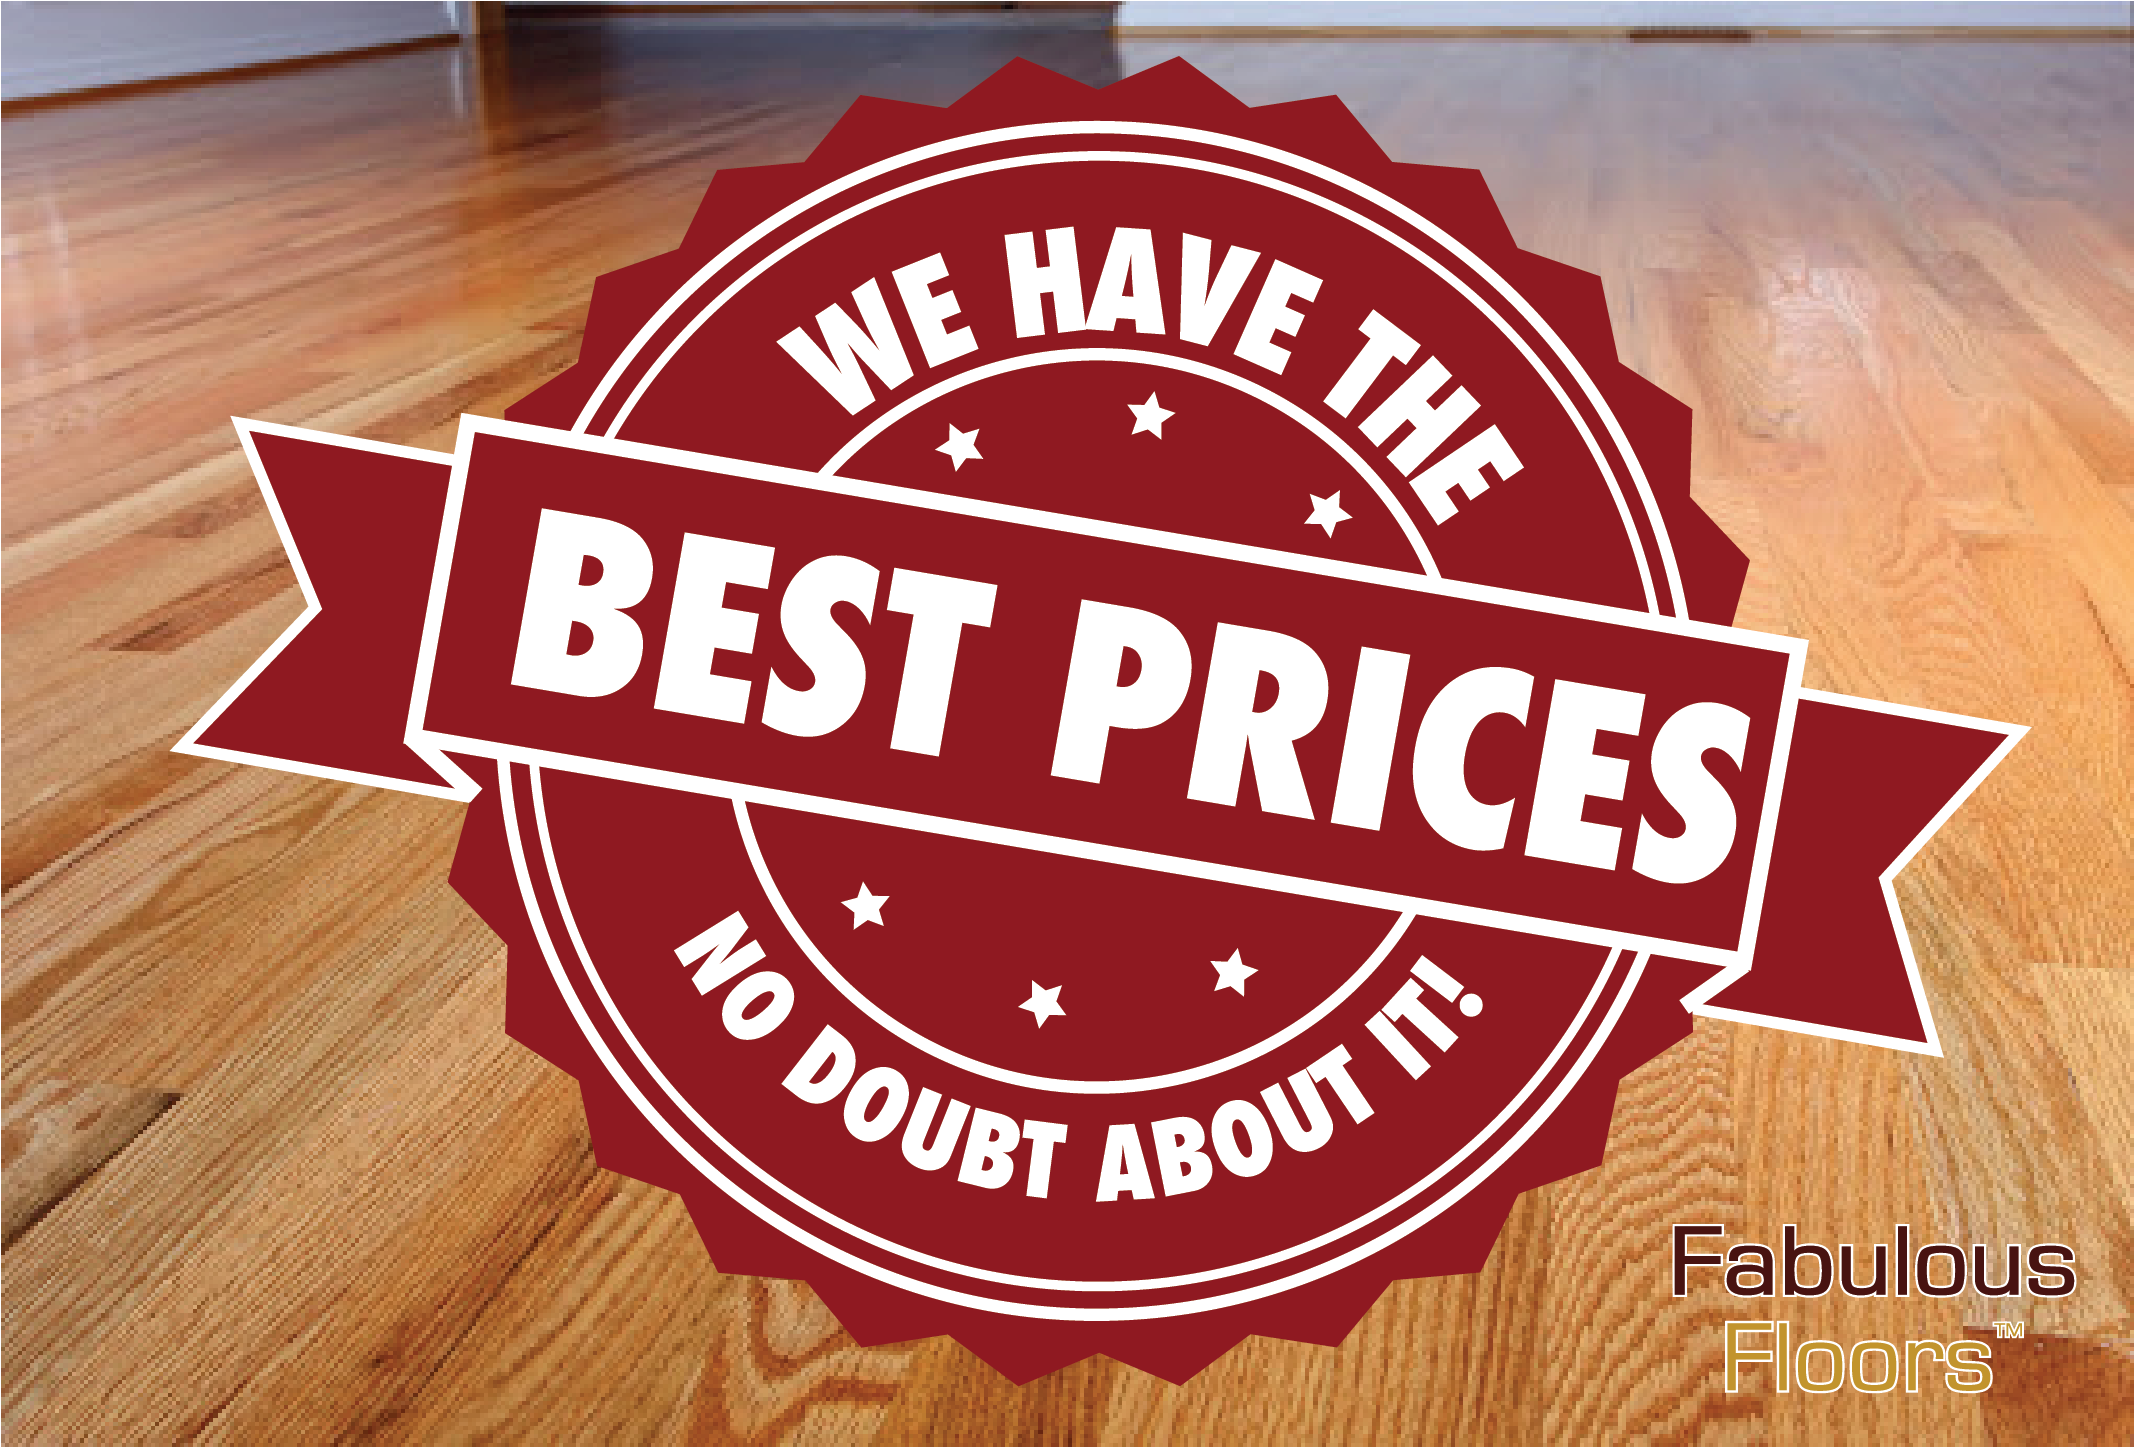 The best prices, no doubt about it